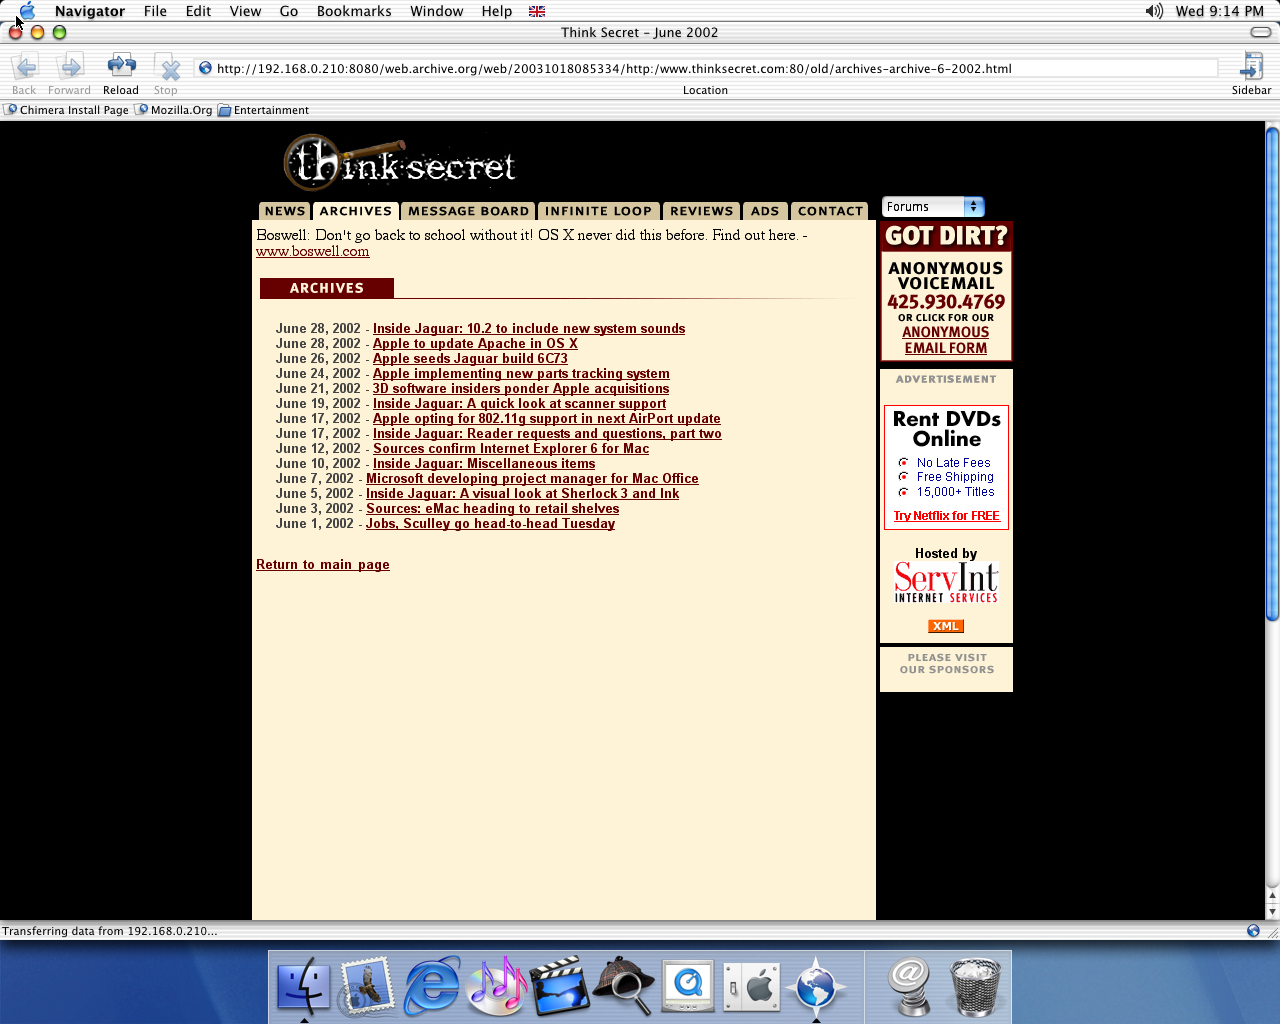 OS X 10.1 PPC with Chimera 0.6 displaying a page from Think Secret archived at October 18, 2003 at 08:53:34